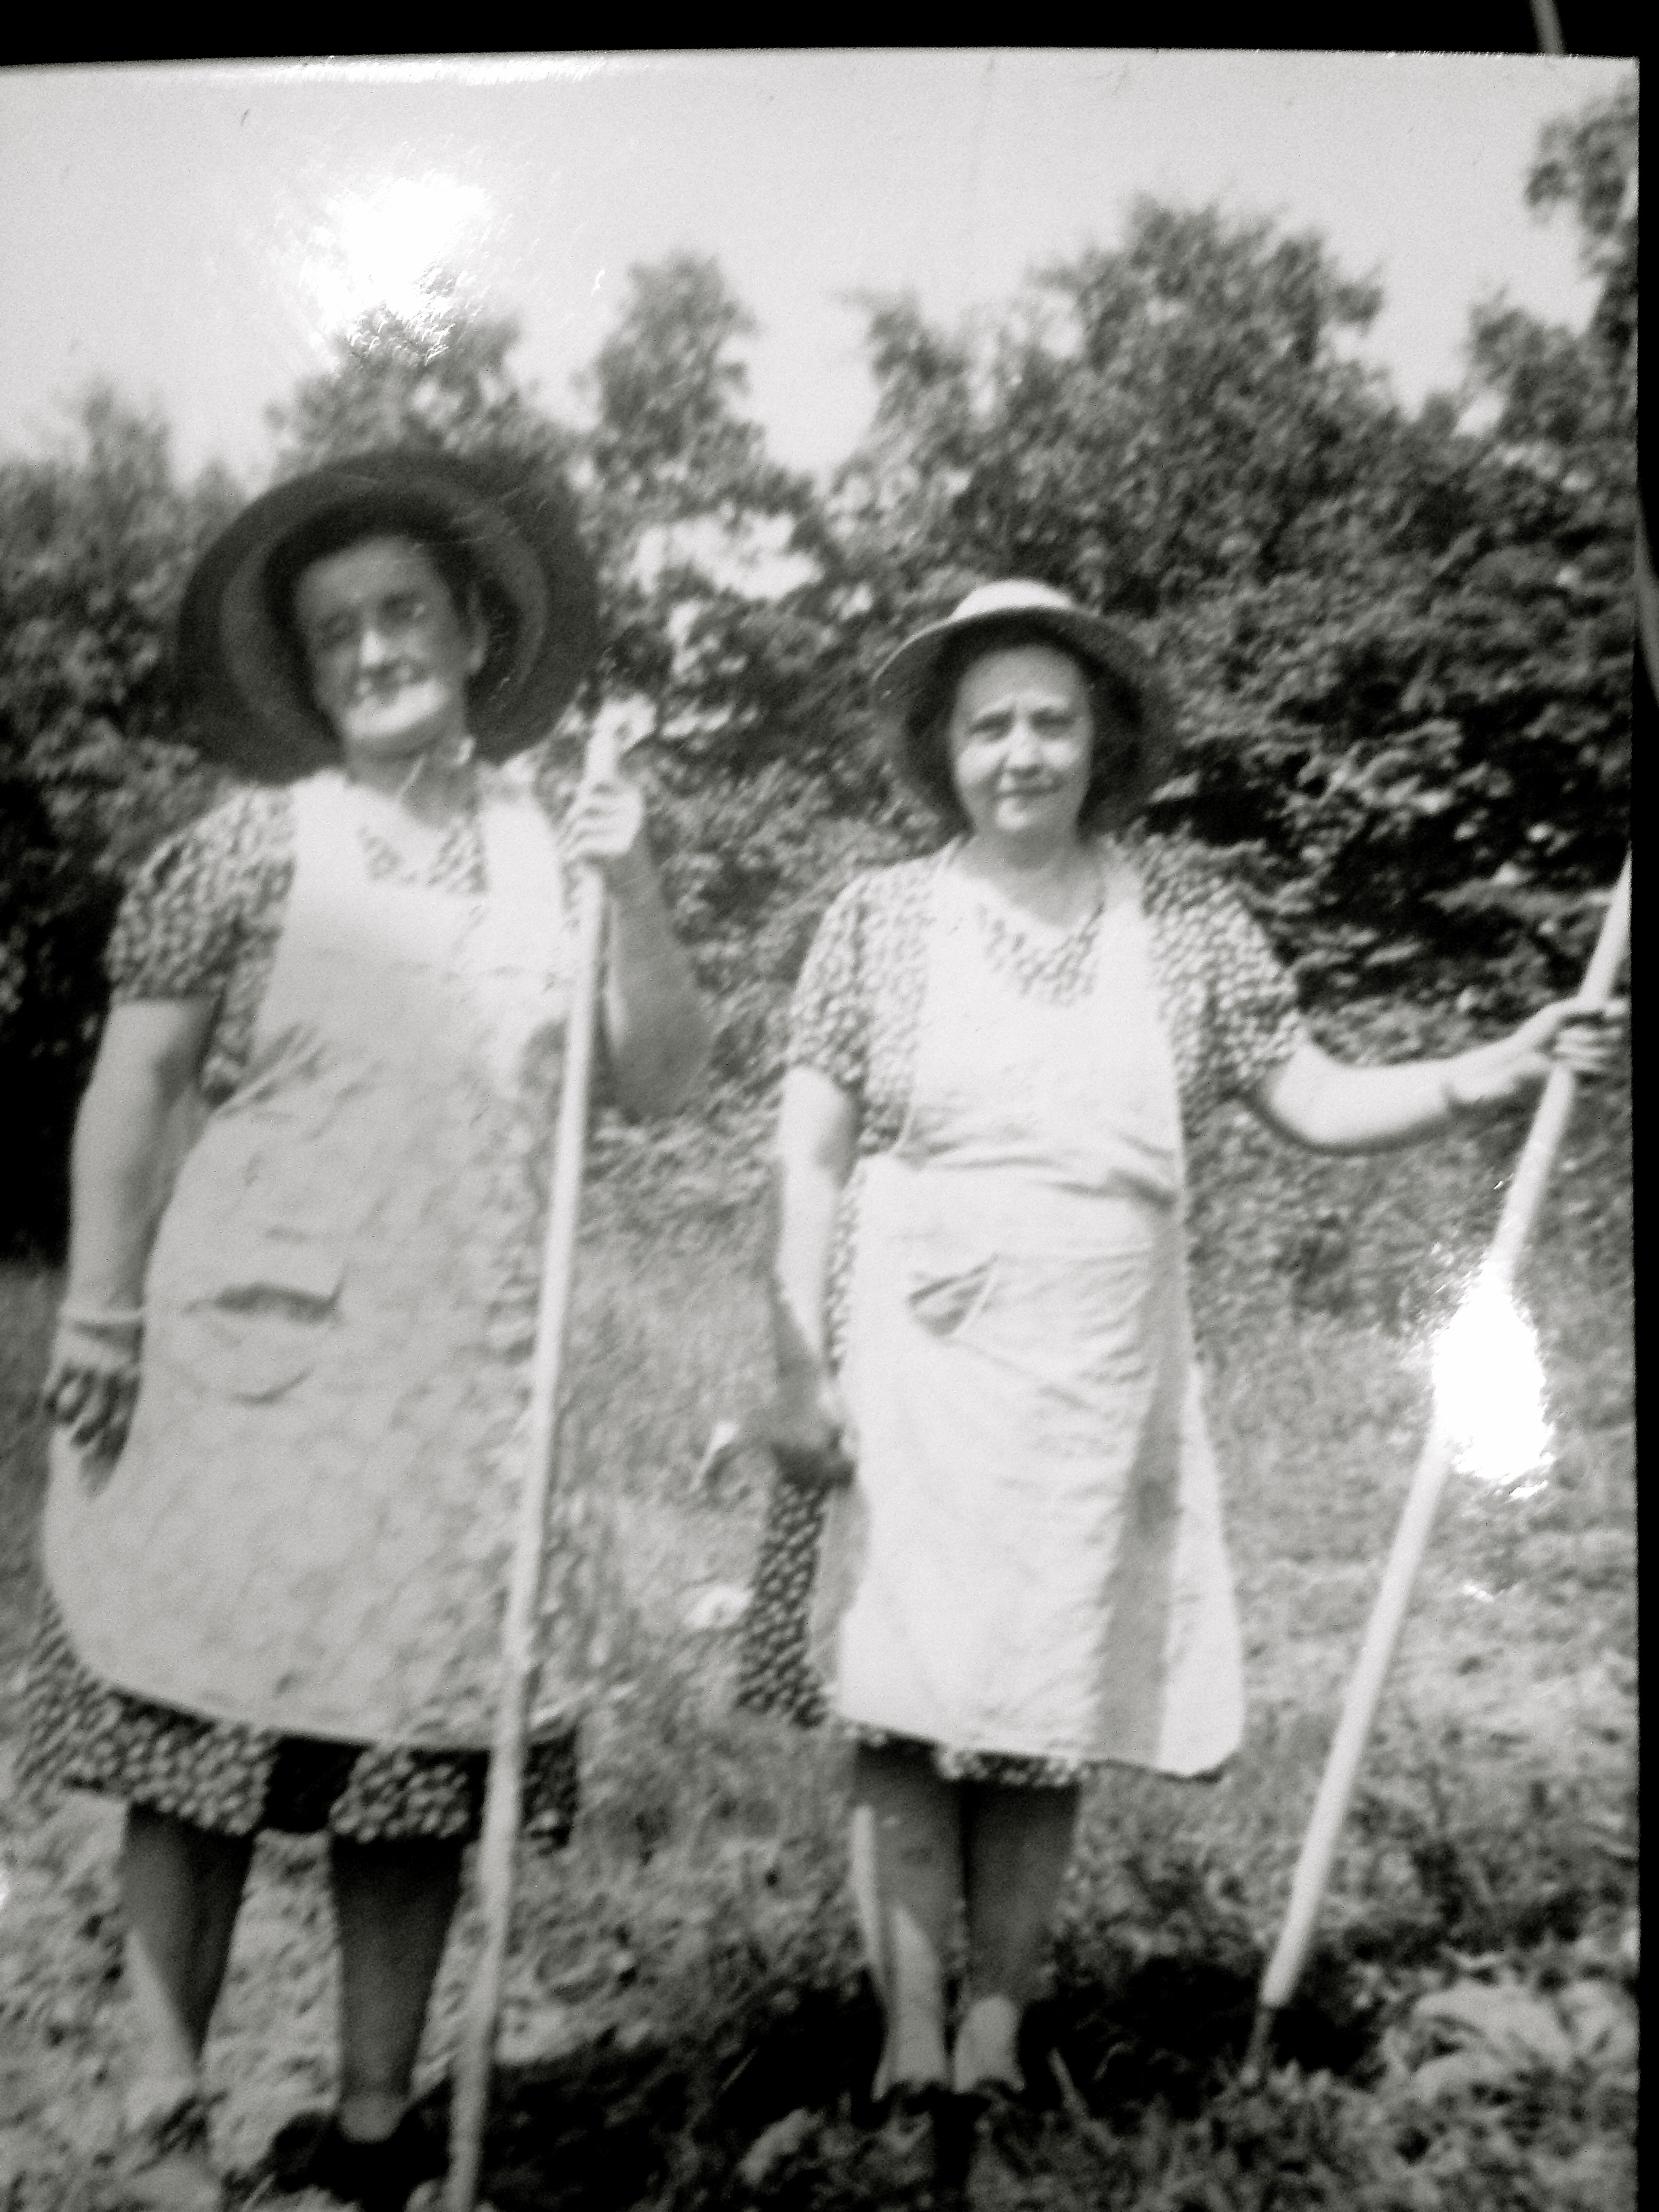 Two old American women on a farm